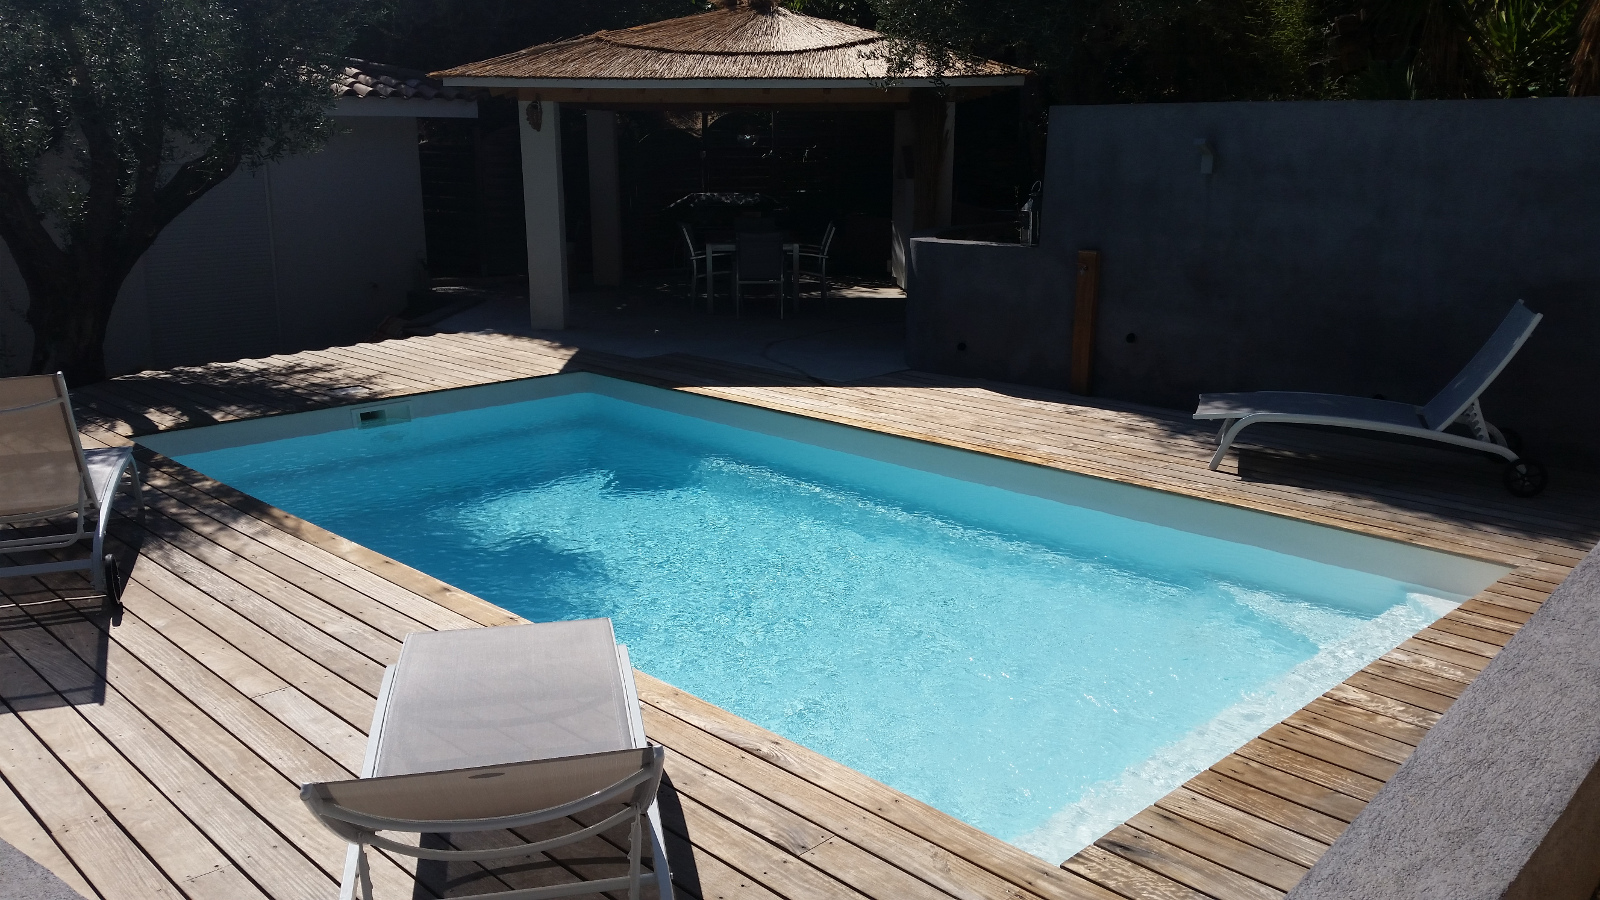 Installation de piscines cuers alliance piscines toulon for Piscine celestine 7